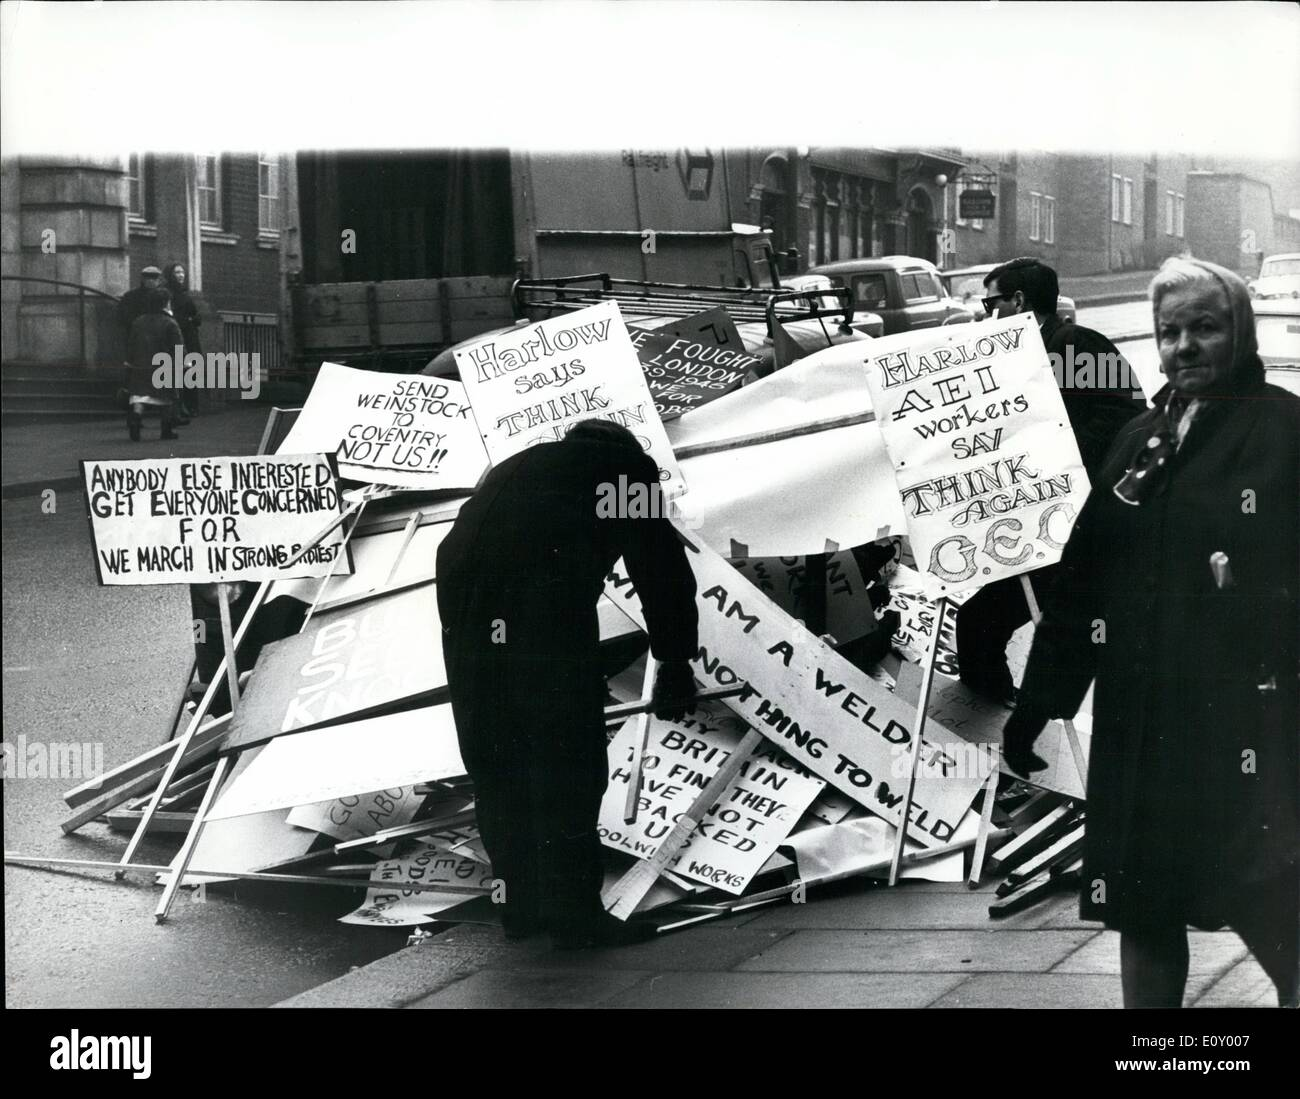 Feb. 02, 1968 - Workers in protest march .Five thousand angry men and women downed tools yesterday in protest over plans to shut their factory. the workers, from the associated electrical industries plant in woolwich, London then marched in a mile-long queue to a cinema where they met union chiefs. Mr. Christopher may new, M.p for east woolwich, who addressed the meeting, described the company's decision to close the factory as a ''bombsheli which has wrecked the entire area's employment situation - Stock Image